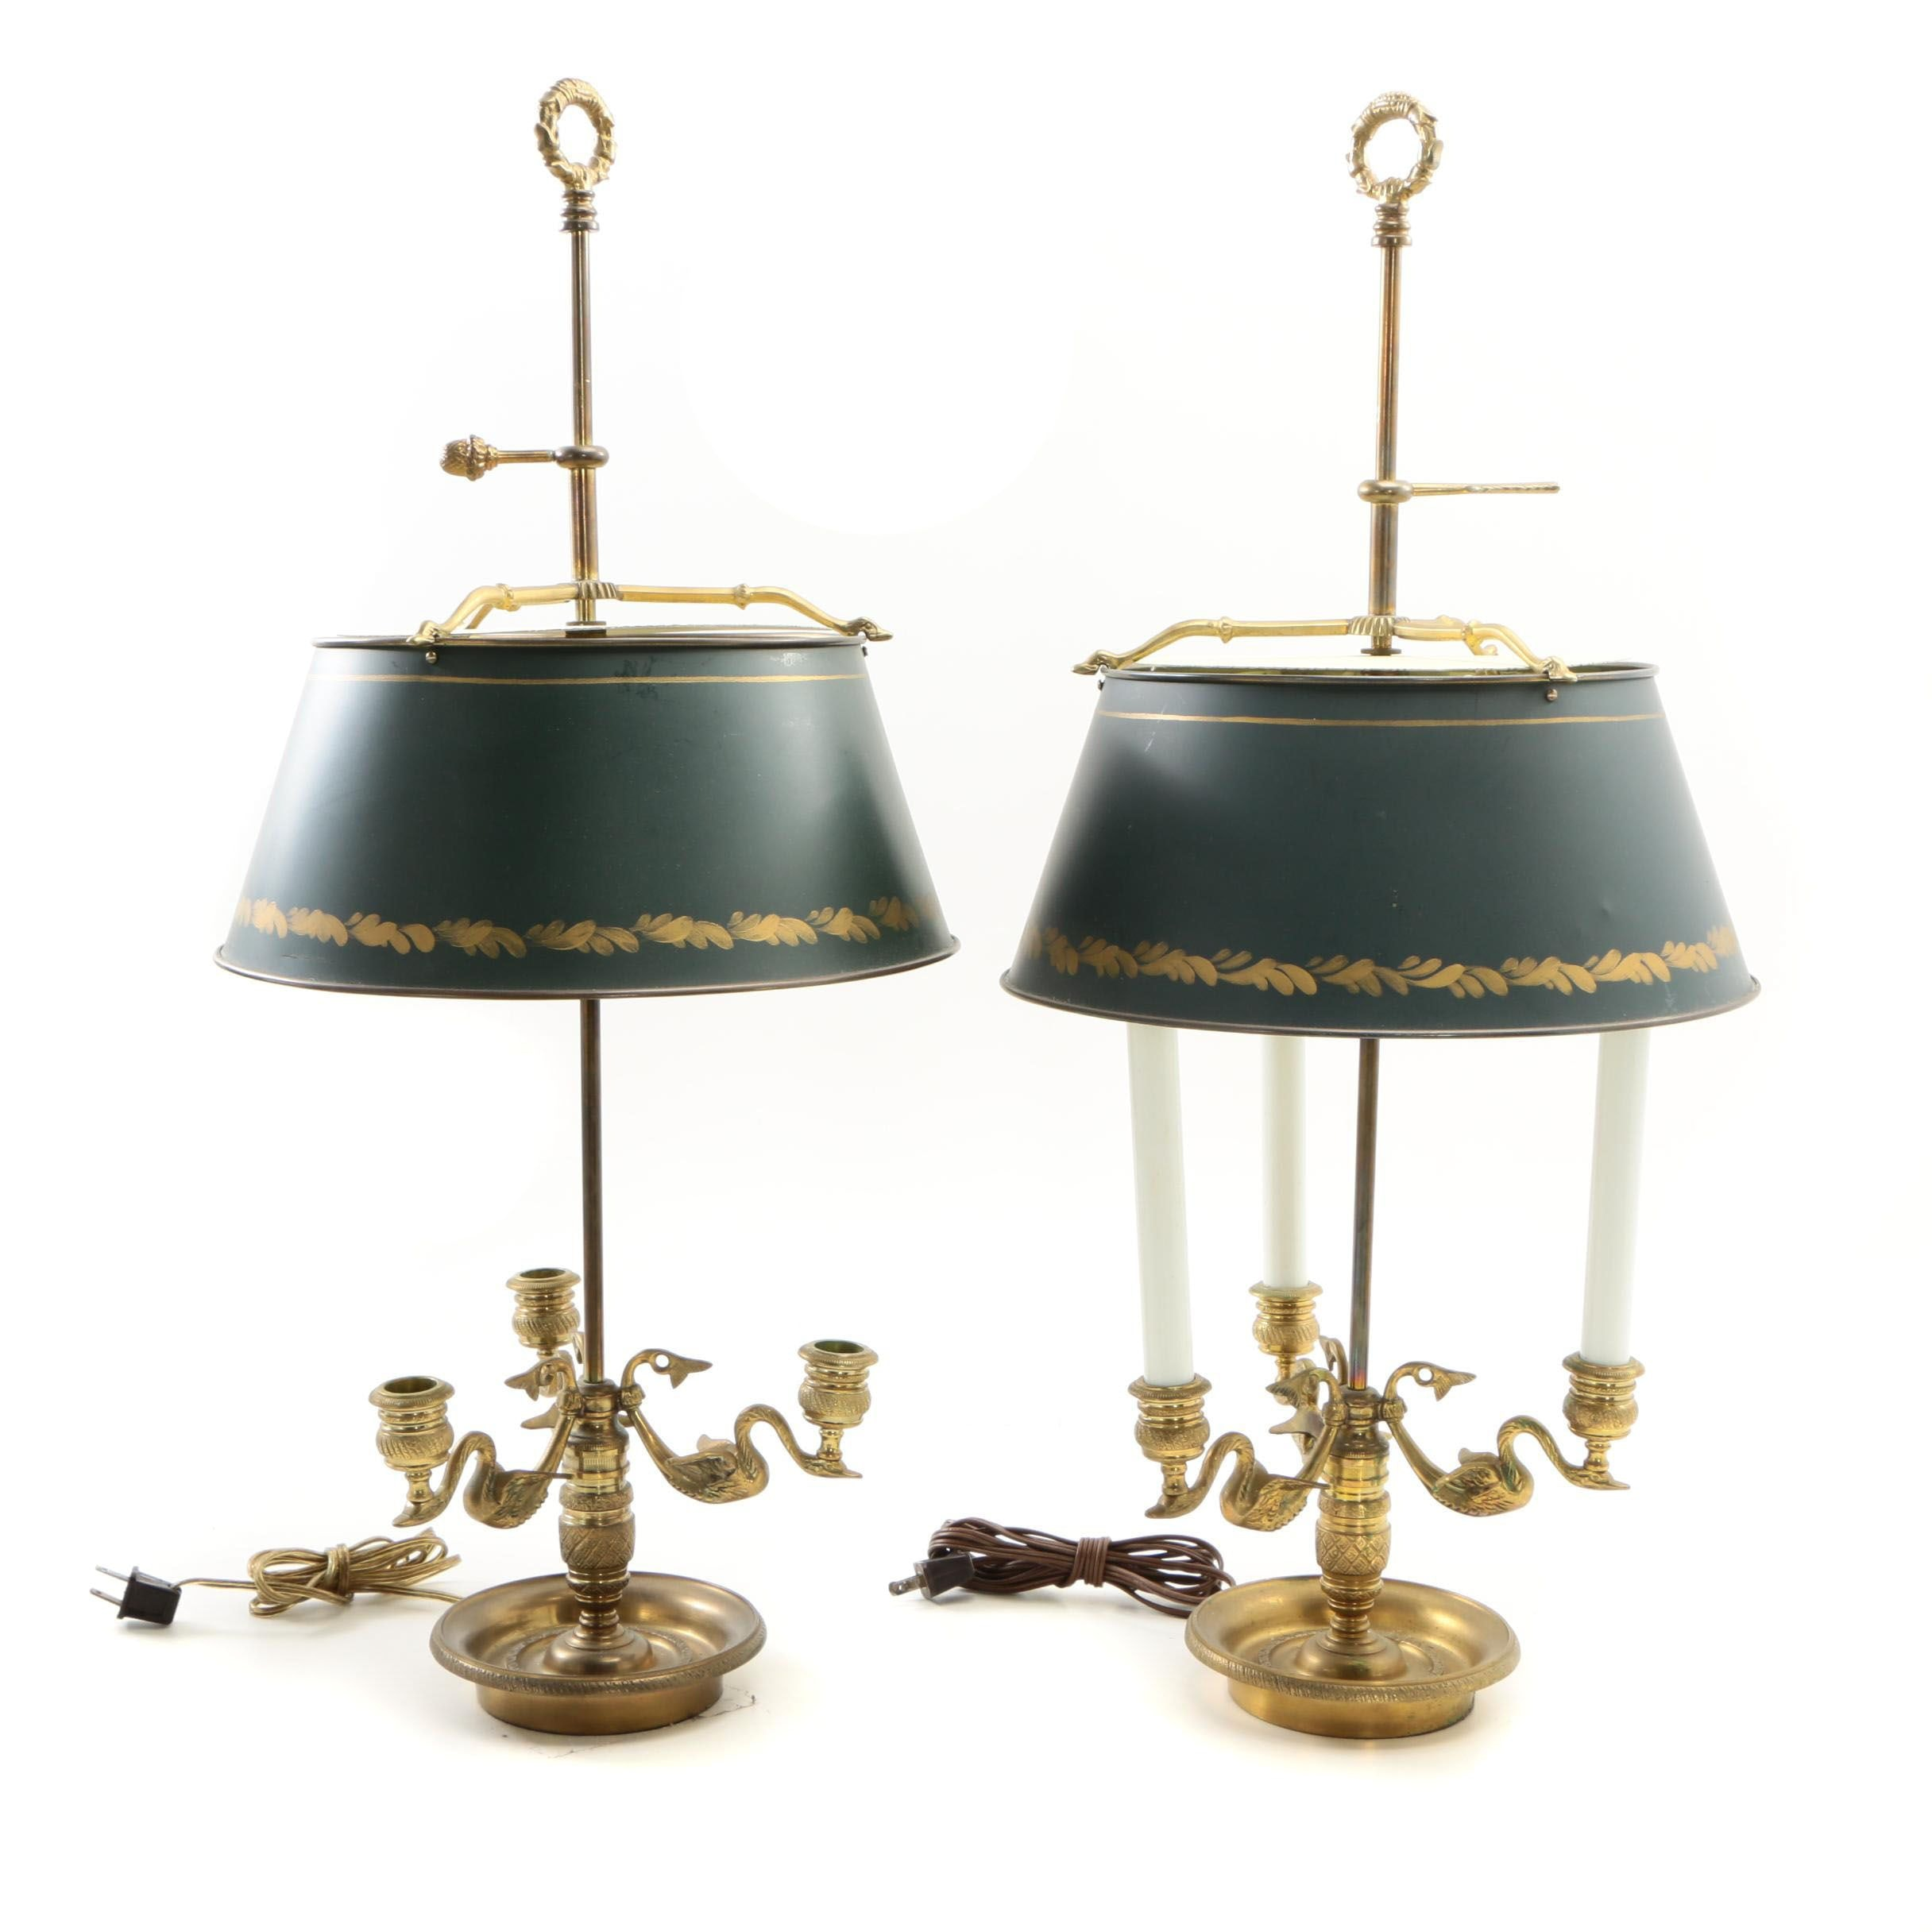 Empire Style Chapman Brass Swan Bouillotte Lamps with Tole Lamp Shades, 1972